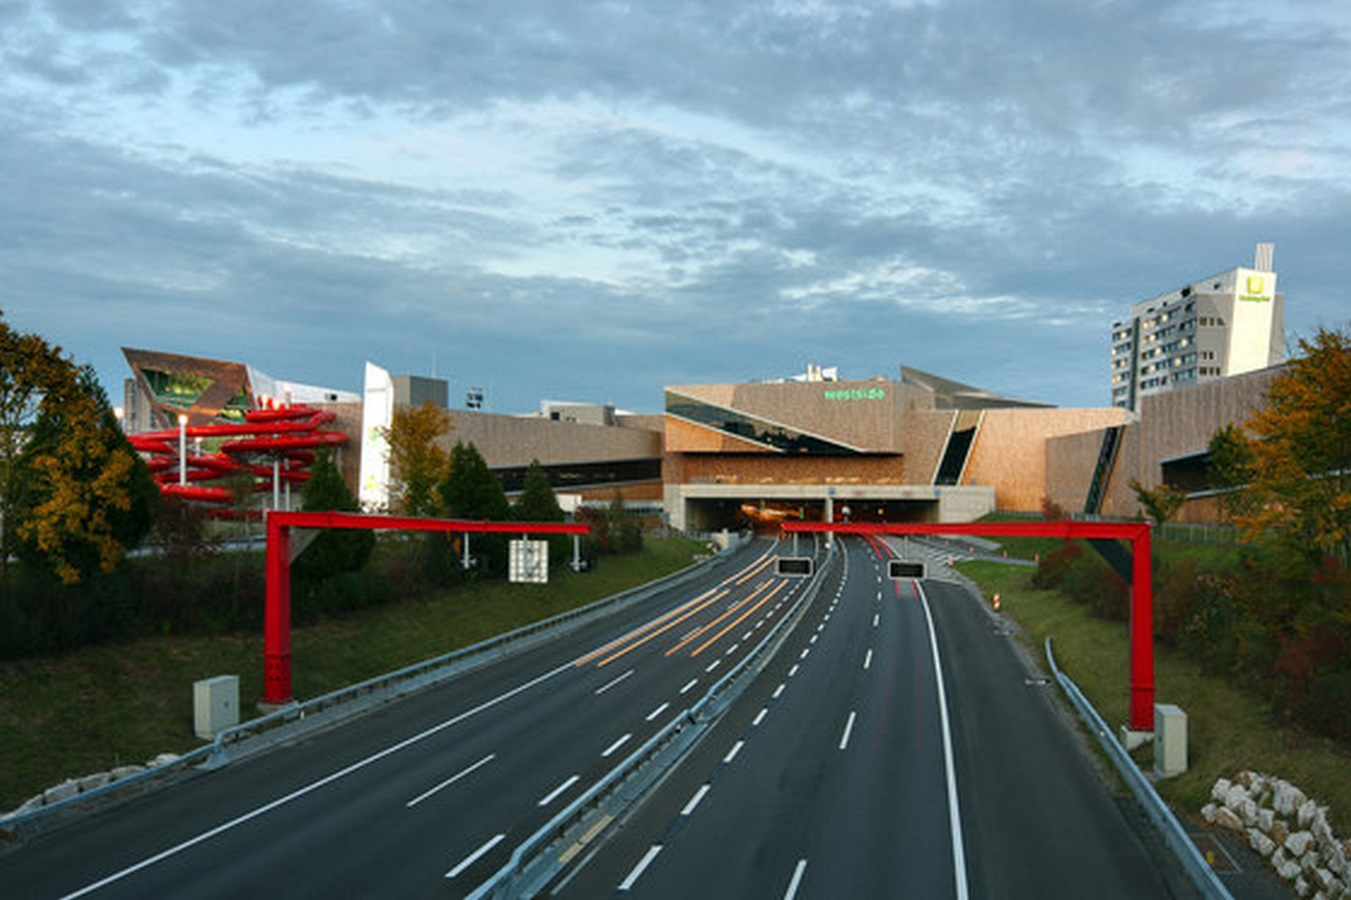 Westside Shopping and Leisure Centre by Daniel Libeskind: Unification of commerce, culture and leisure - Sheet3